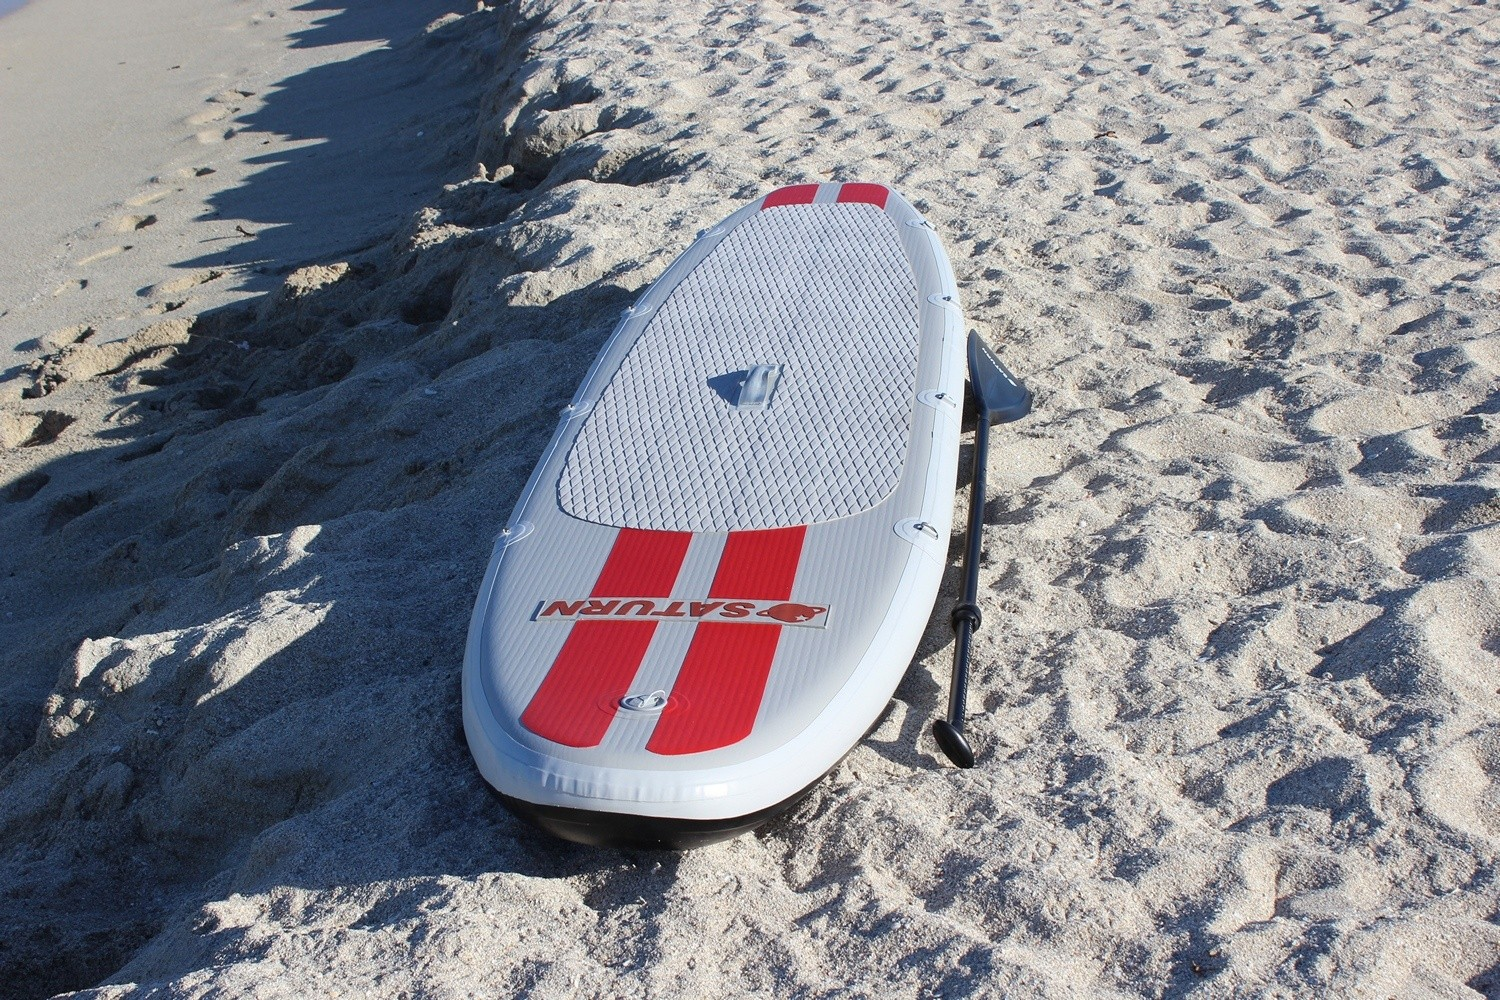 11ft Heavy Duty Inflatable Stand Up Paddleboard Sot330